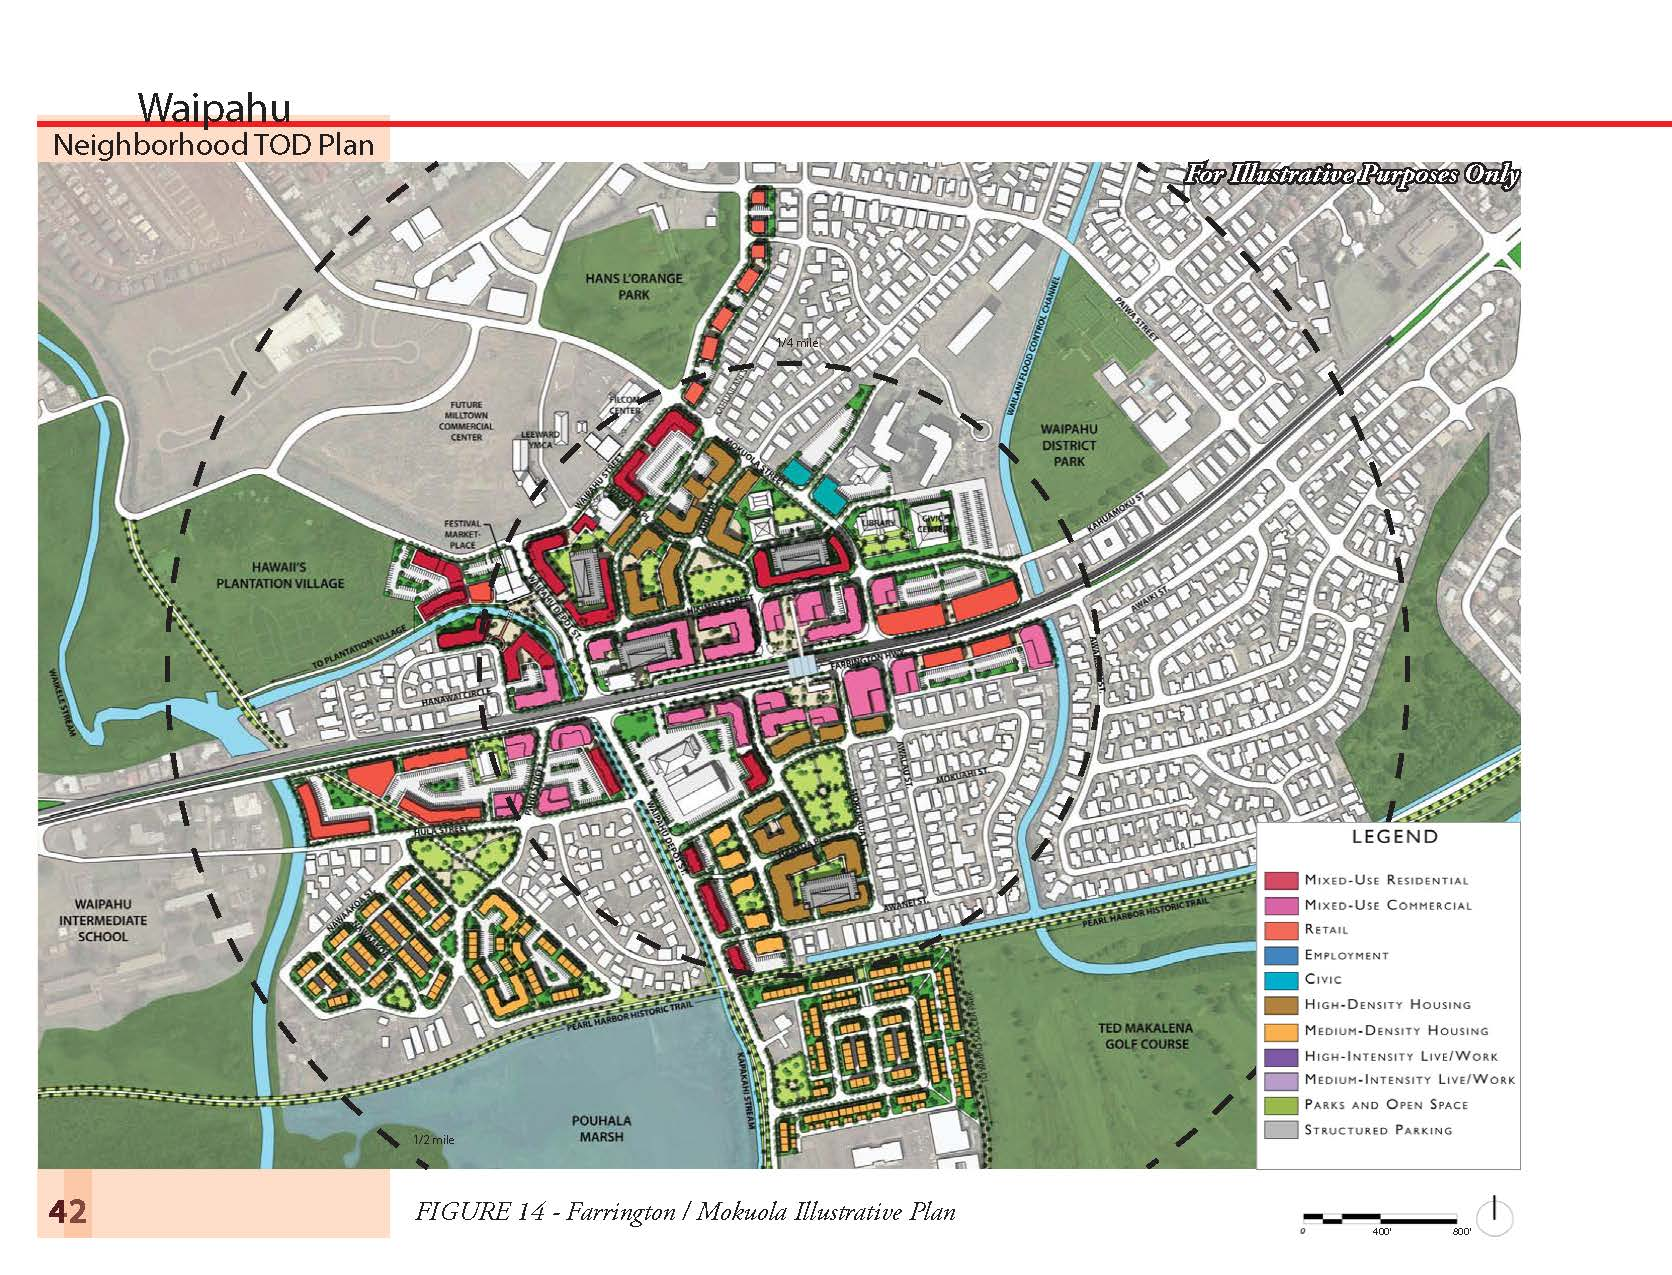 160513_Waipahu Neighborhood TOD Plan_Page_048.jpg